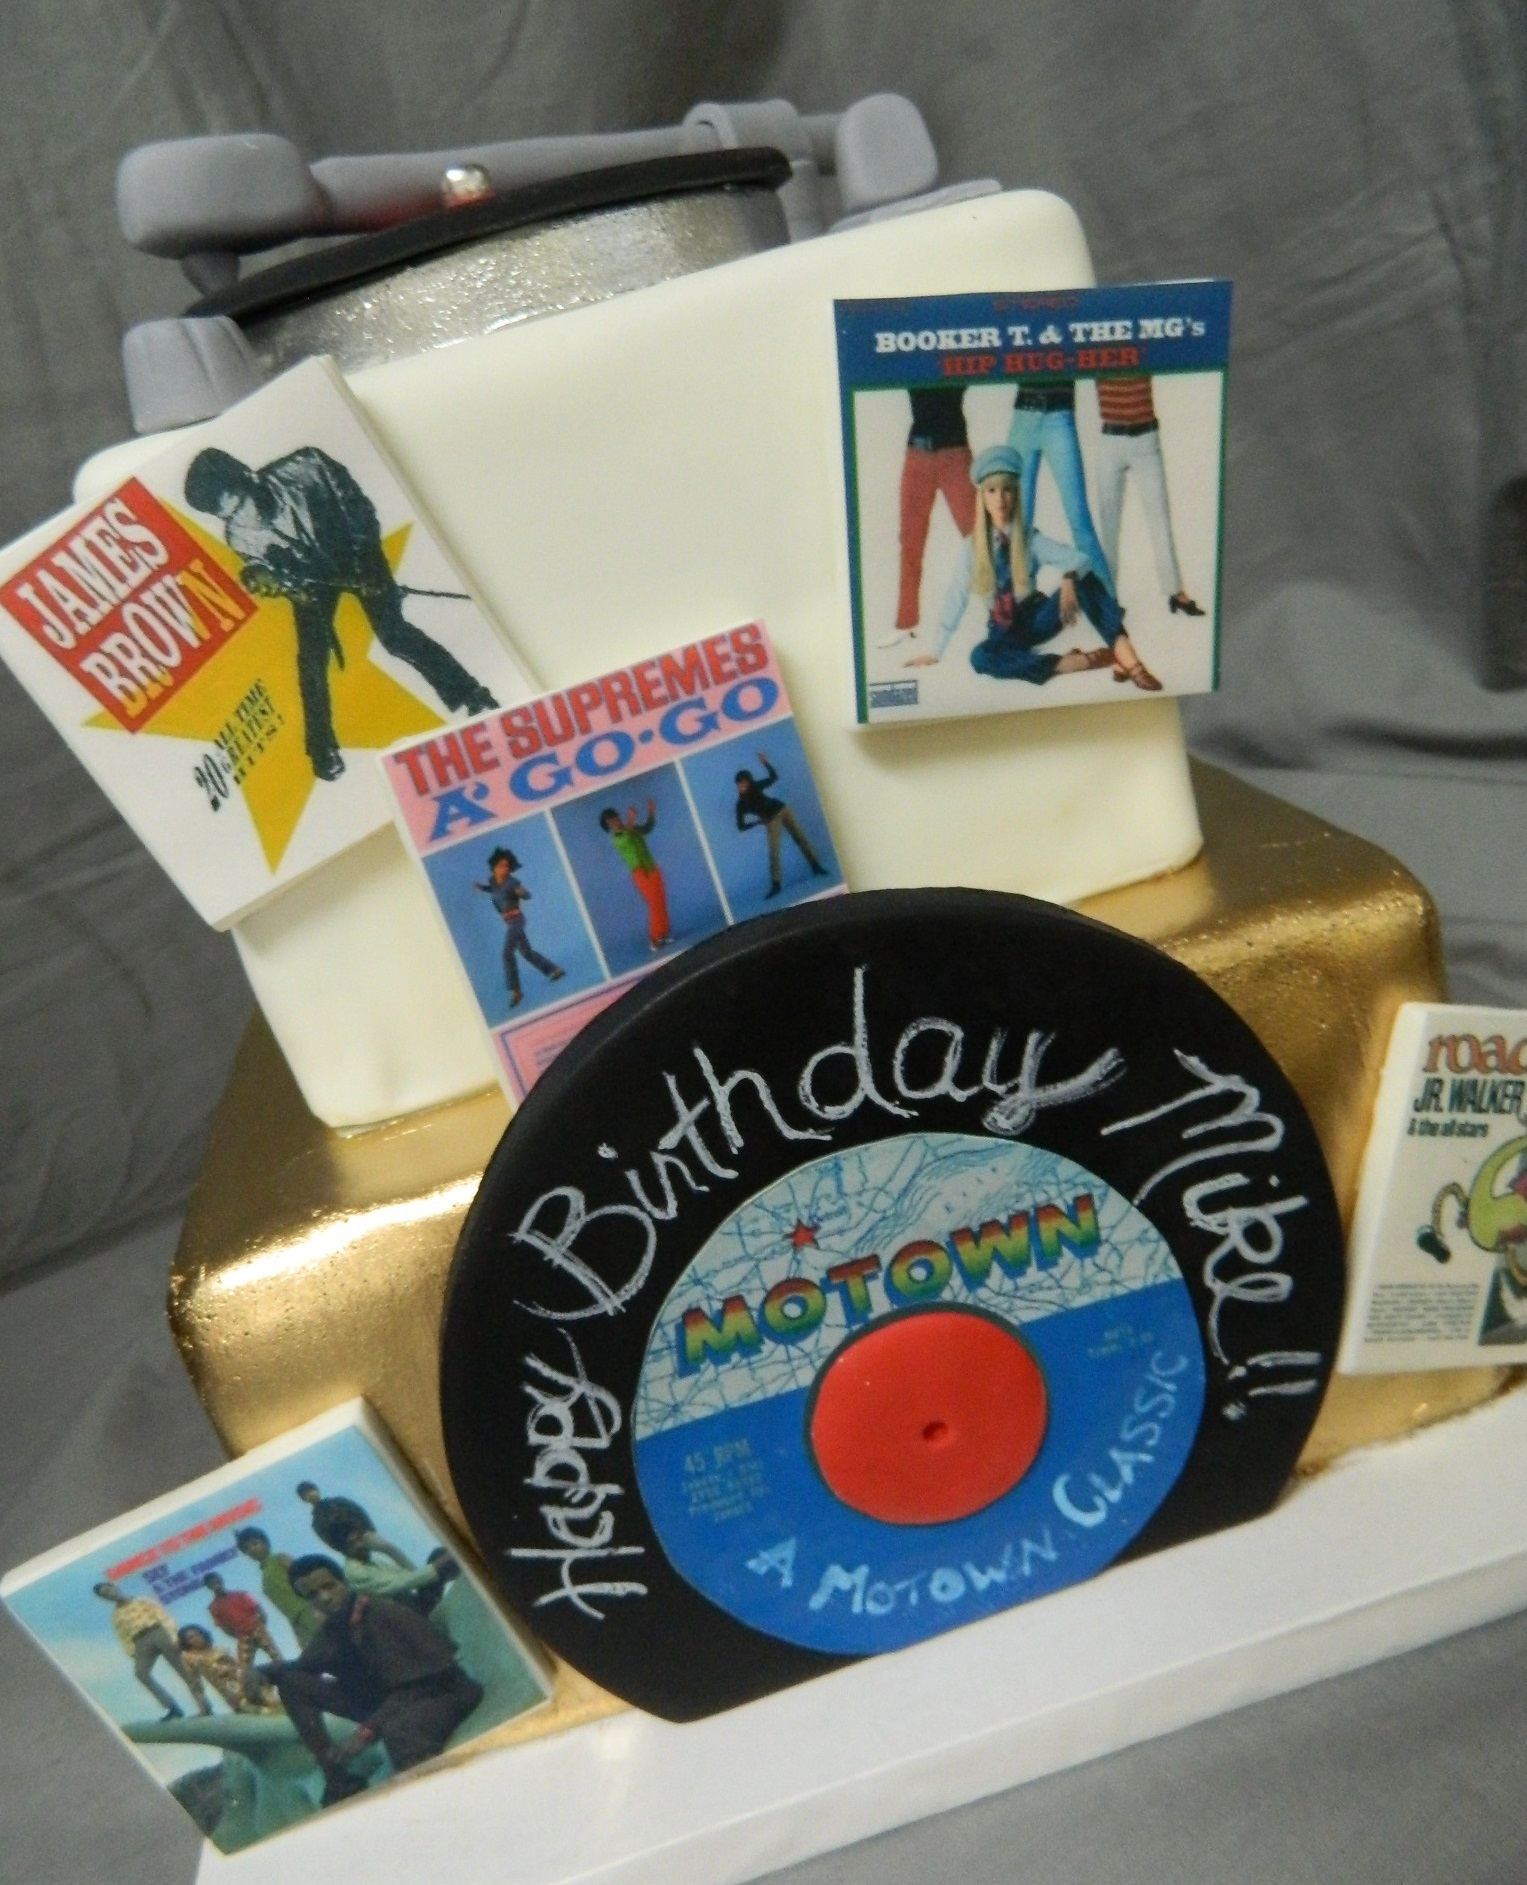 Motown themed custom cake